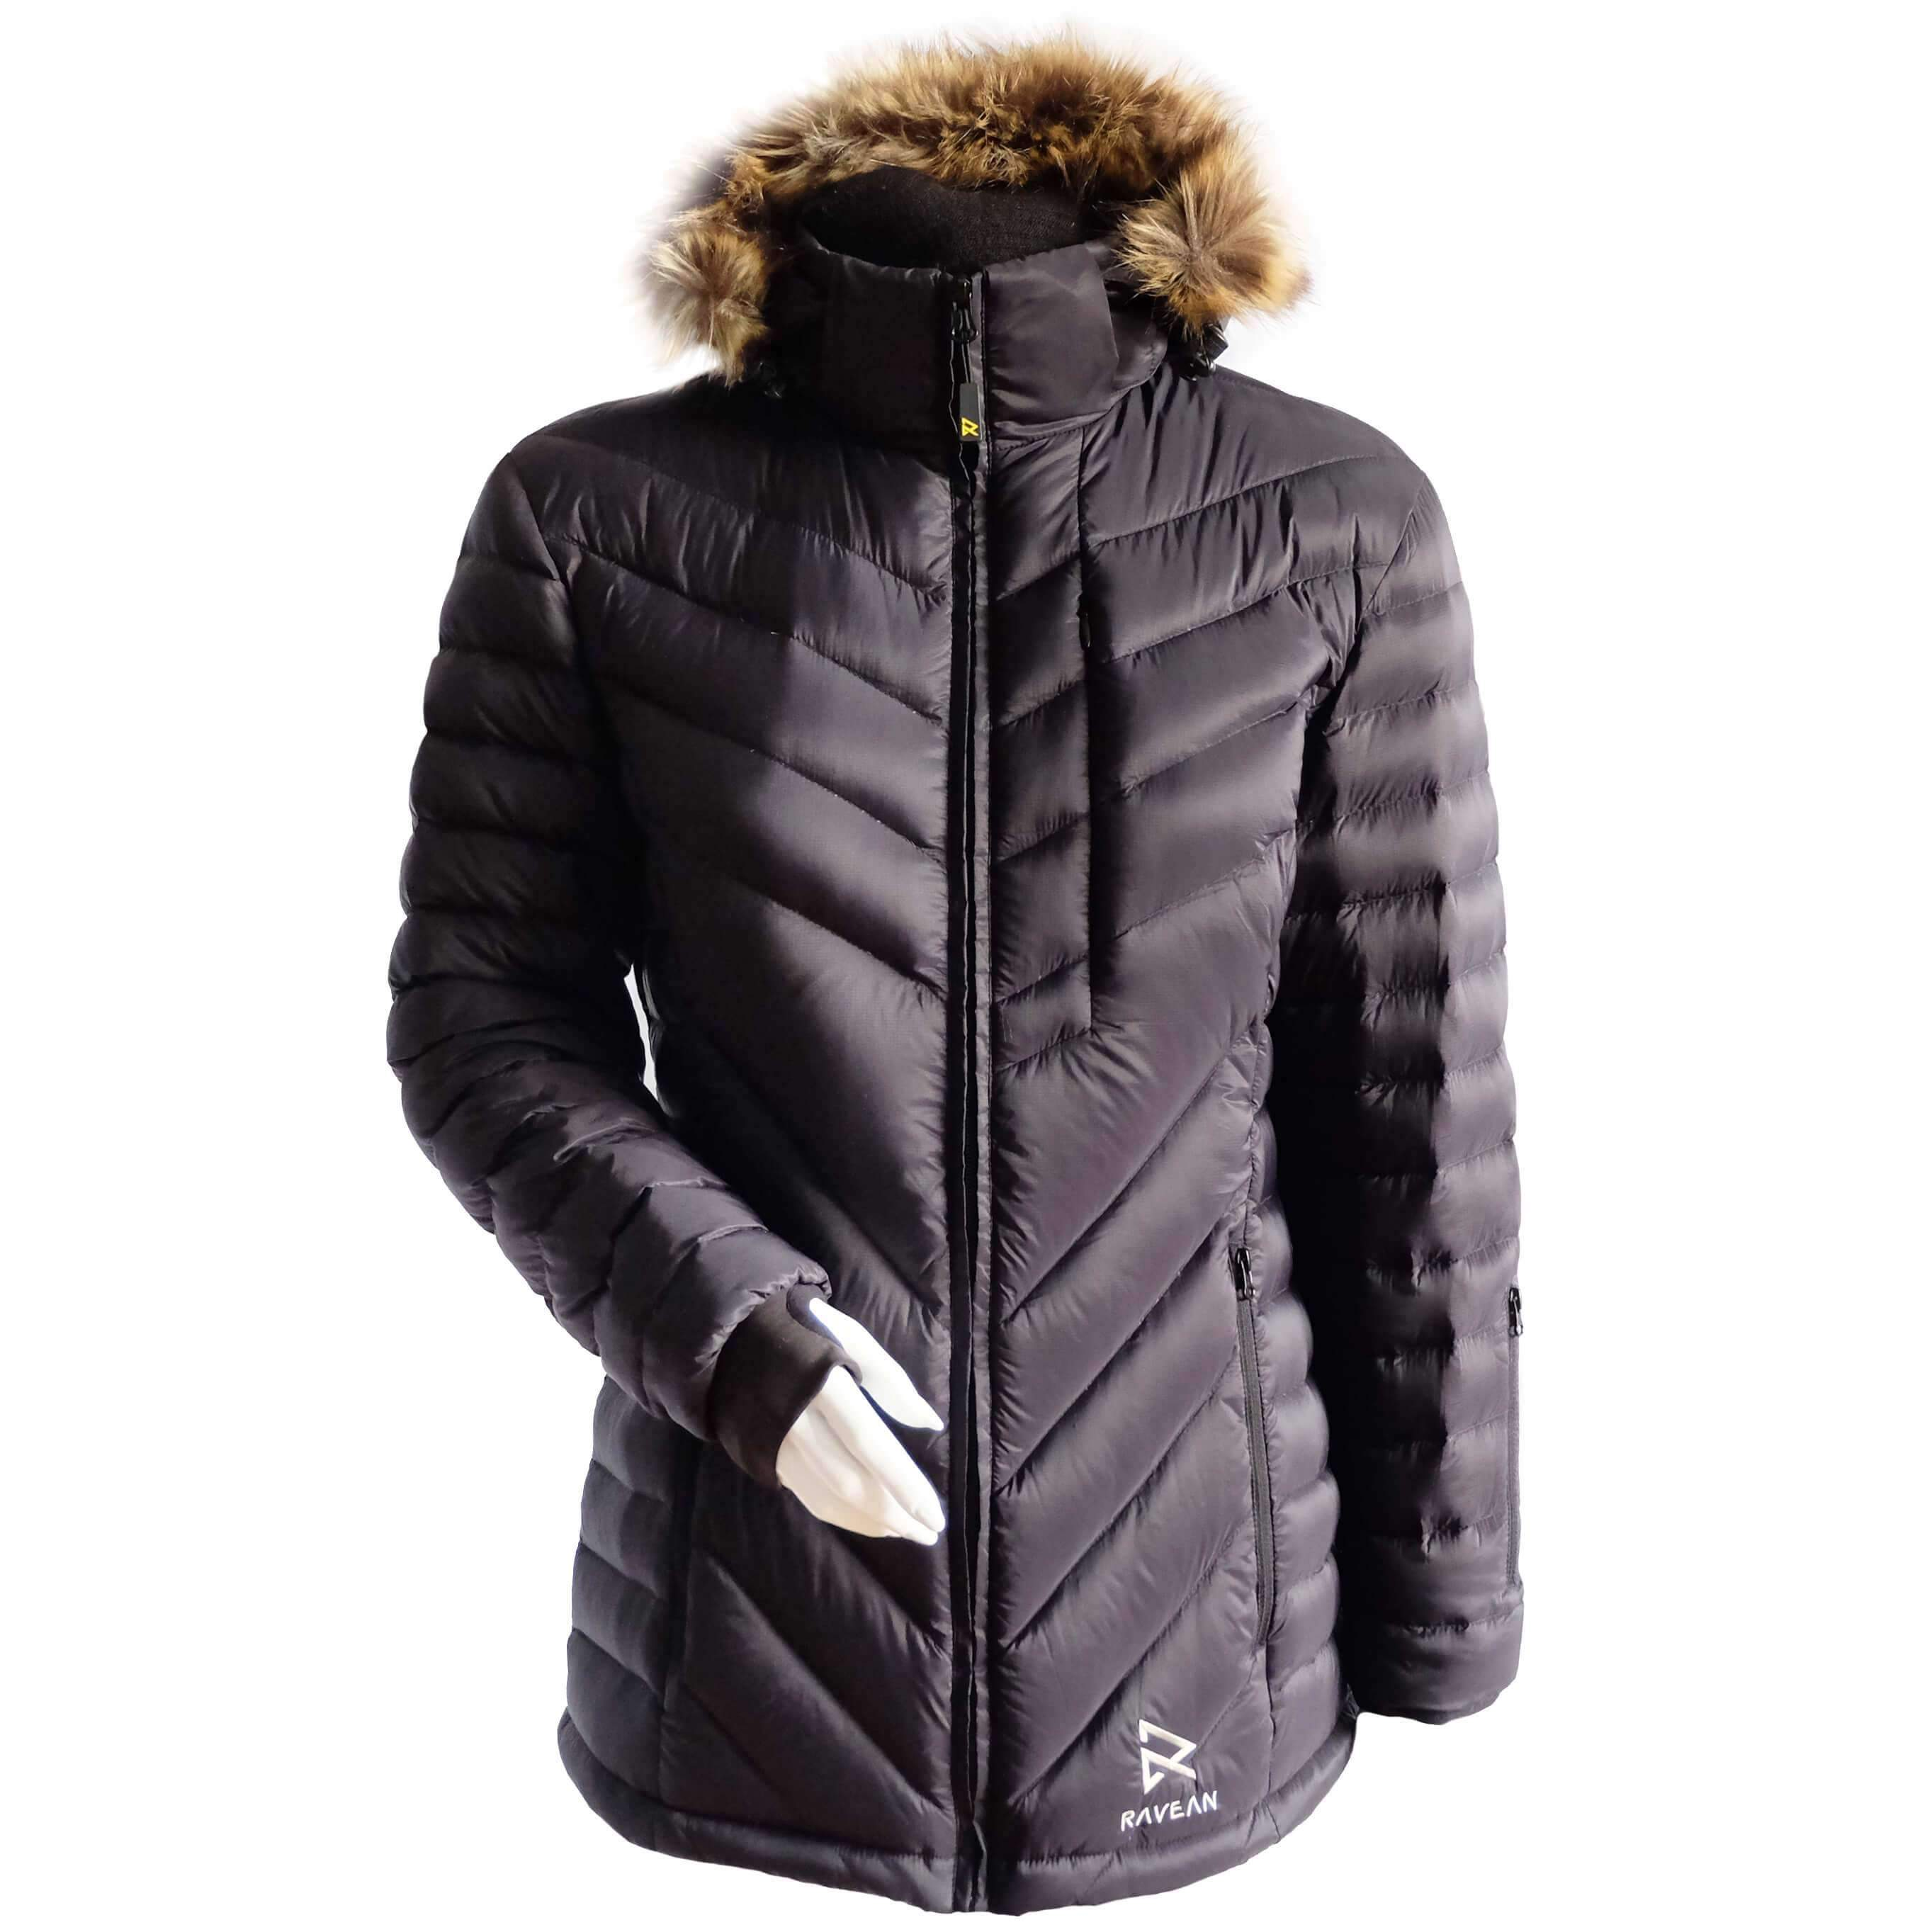 10 Electric Winter Accessories That Keep You Warm and ...